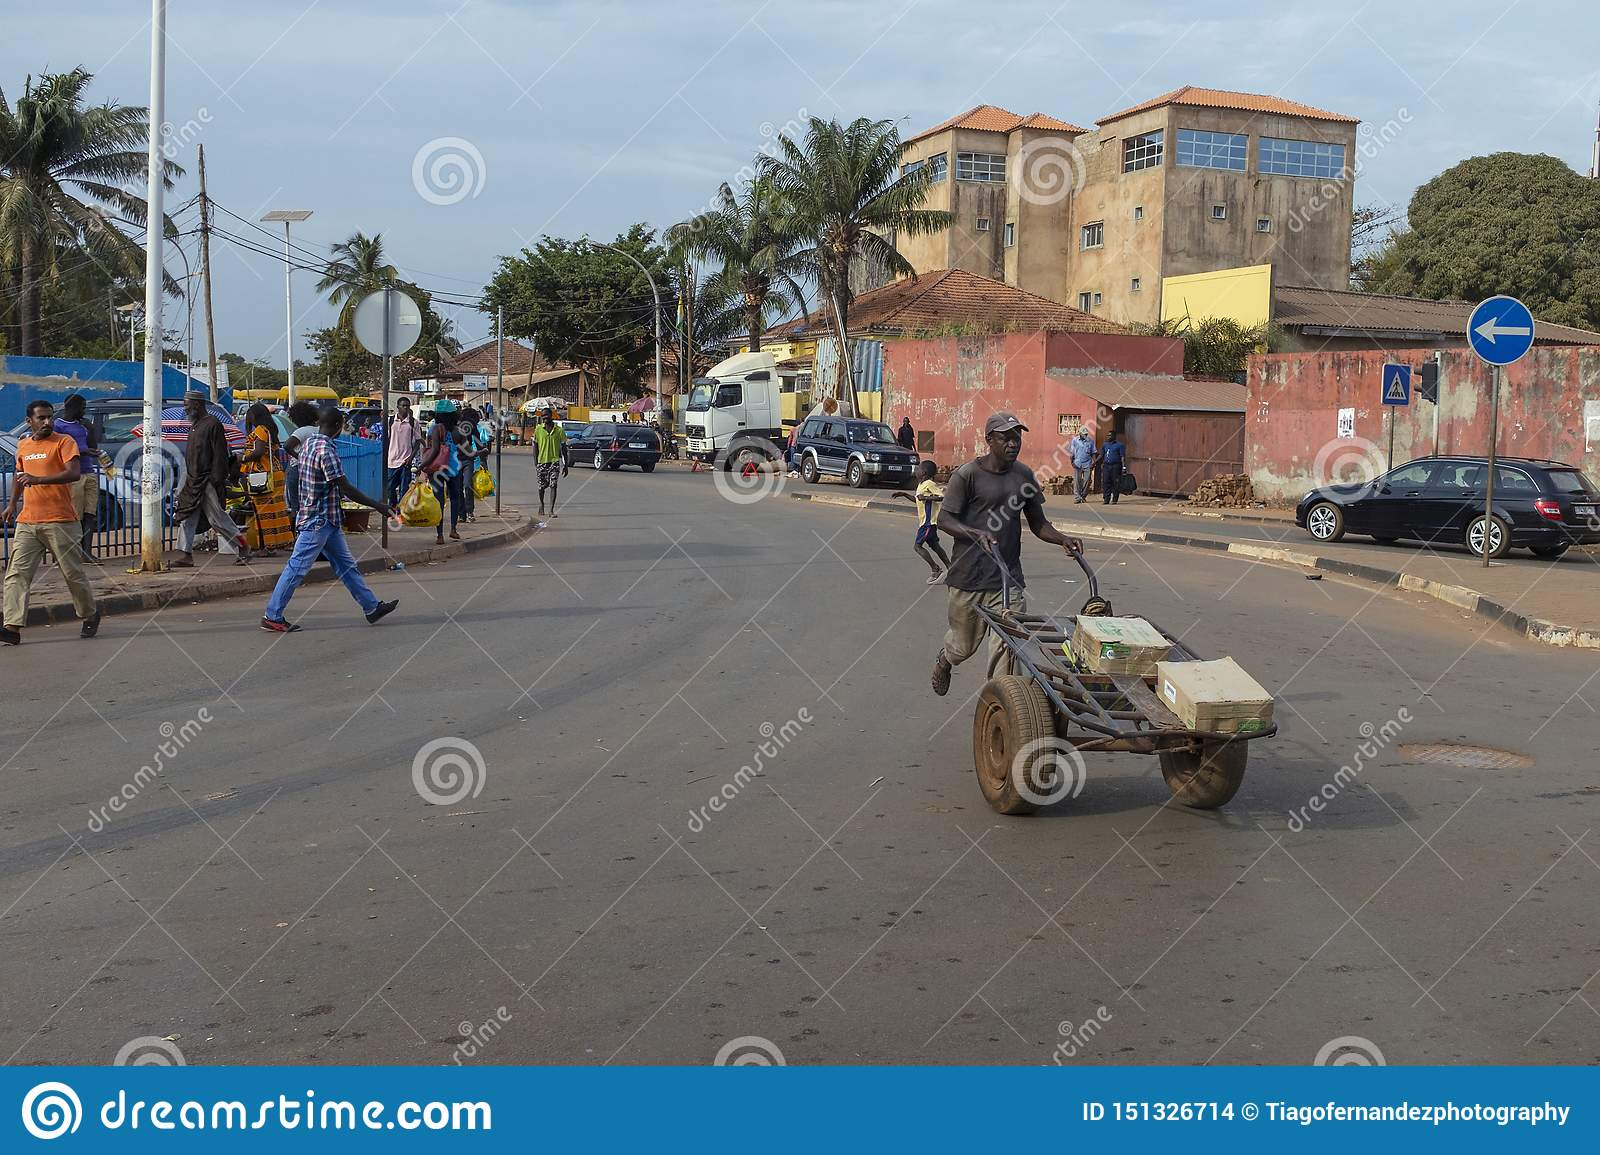 Street scene in the city of Bissau with people crossing a street near the Bandim Market, in Guinea-Bissau